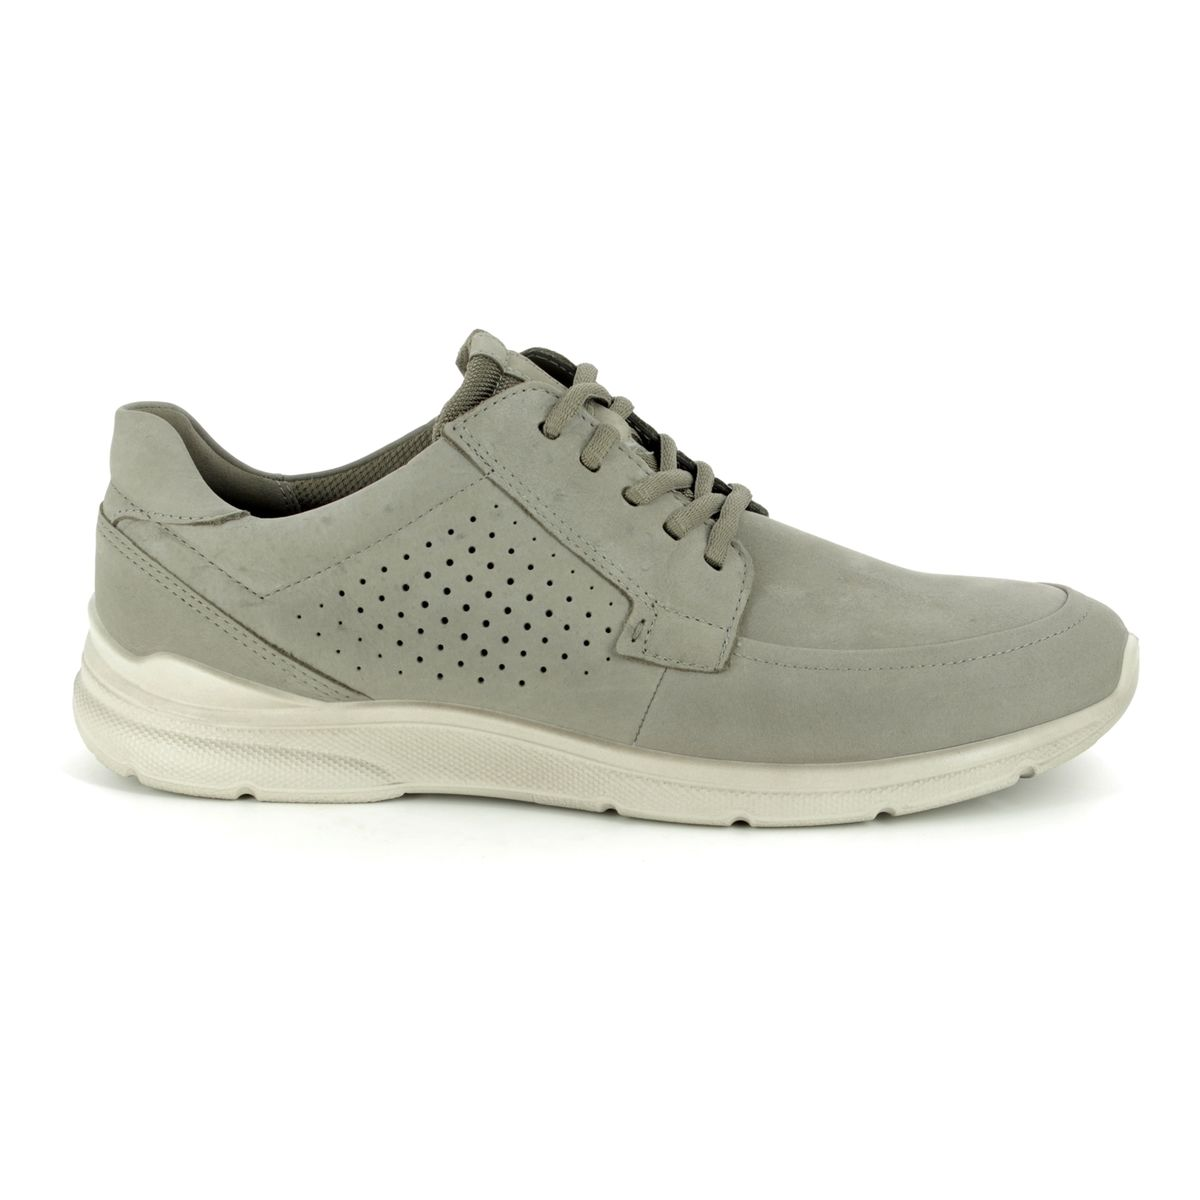 d7eb5f065634 ECCO Casual Shoes - Grey matt leather - 511704 02375 IRVING LACE